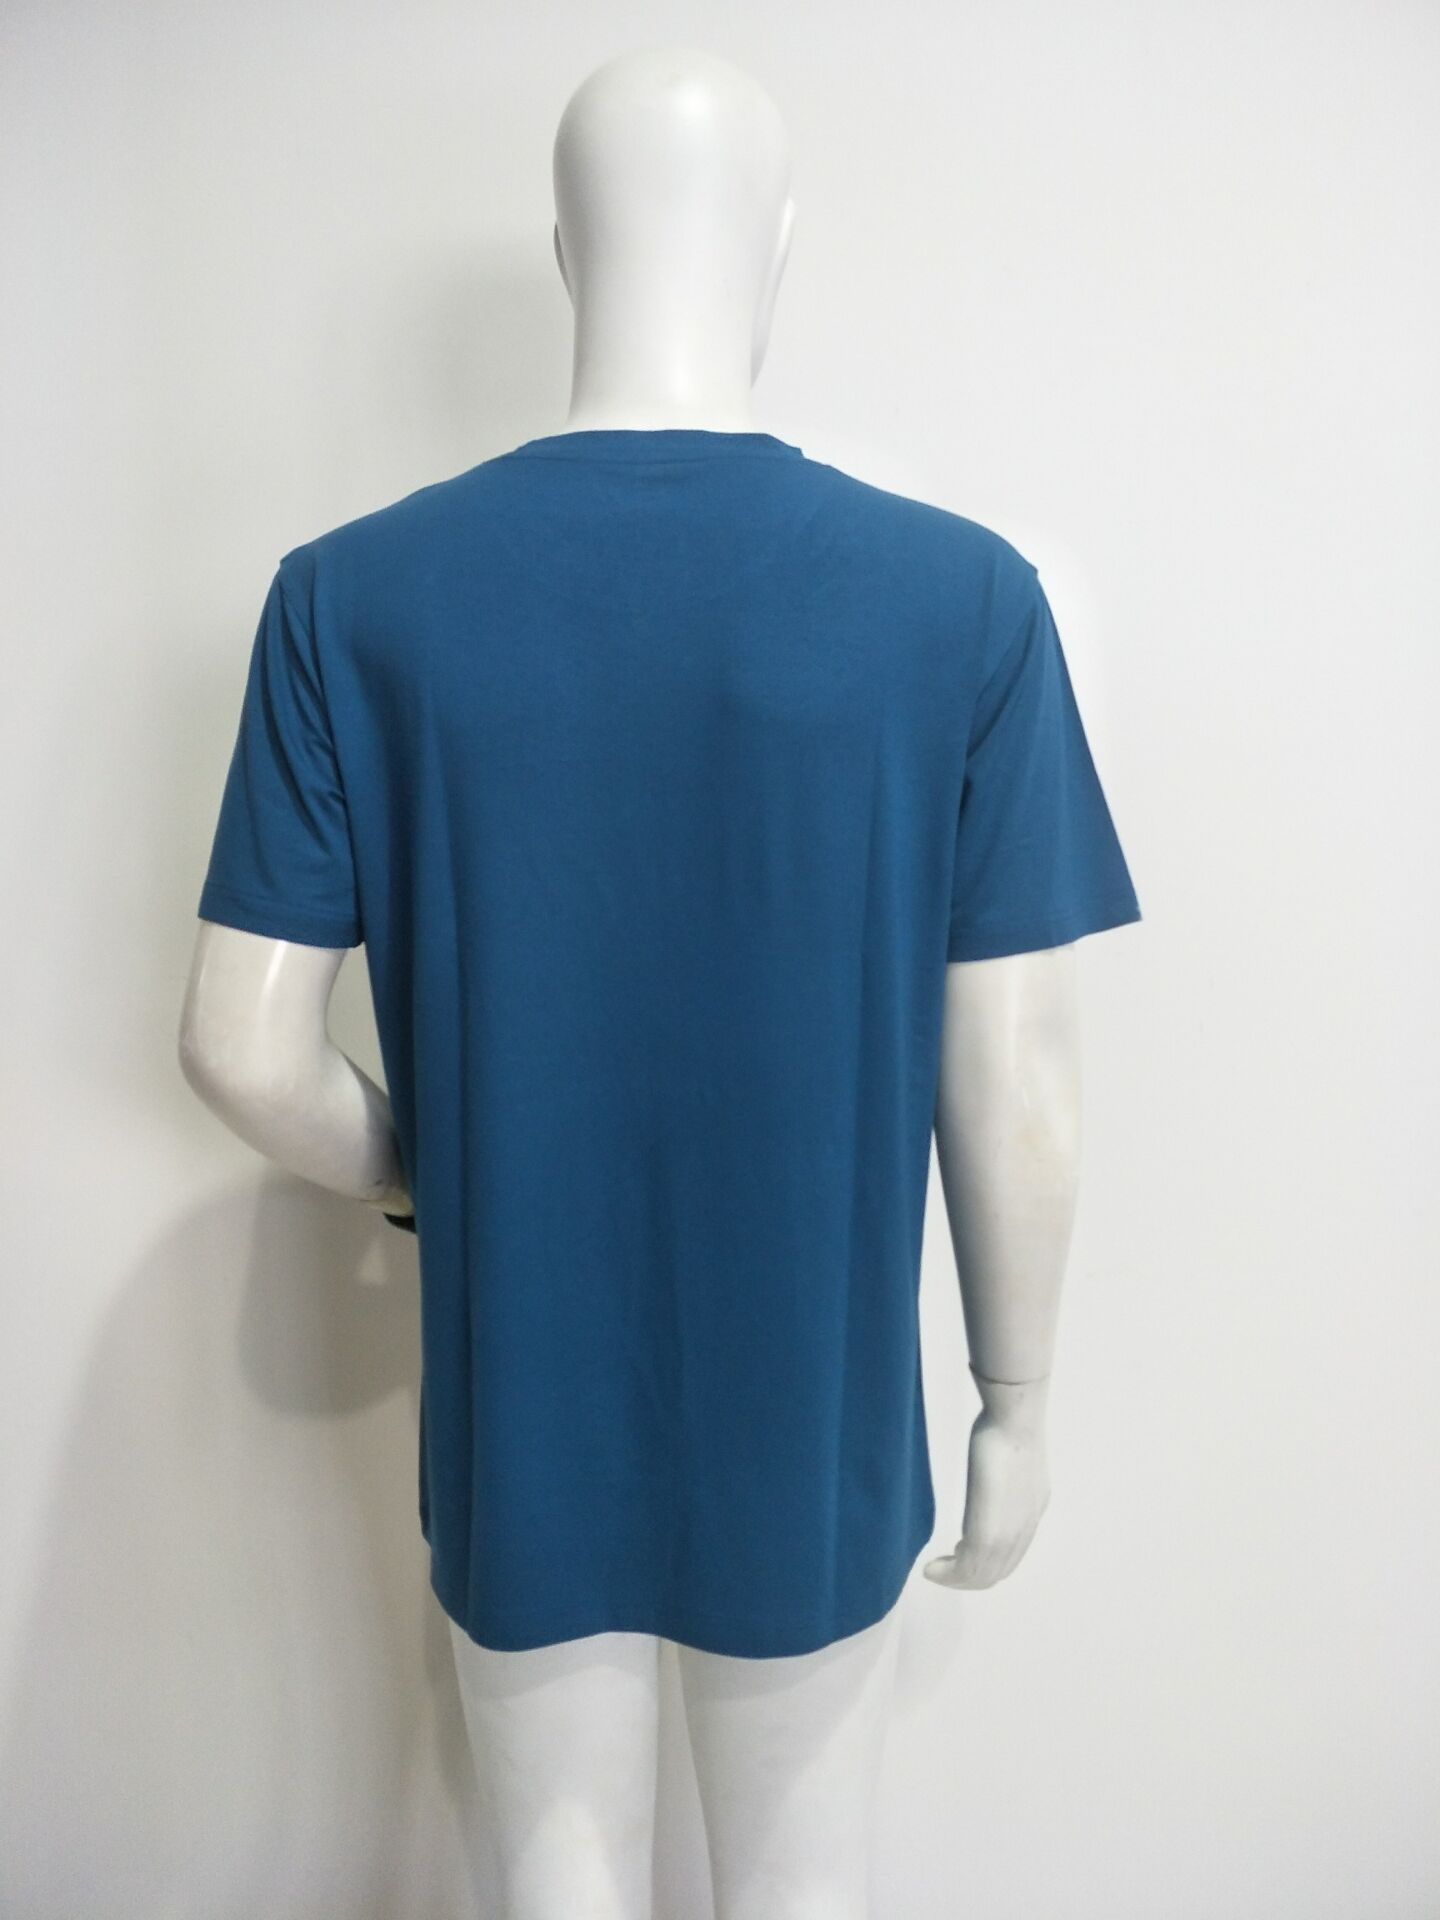 Oem shirt bamboo multi color men 39 s plain round neck bamboo for Bamboo t shirt printing